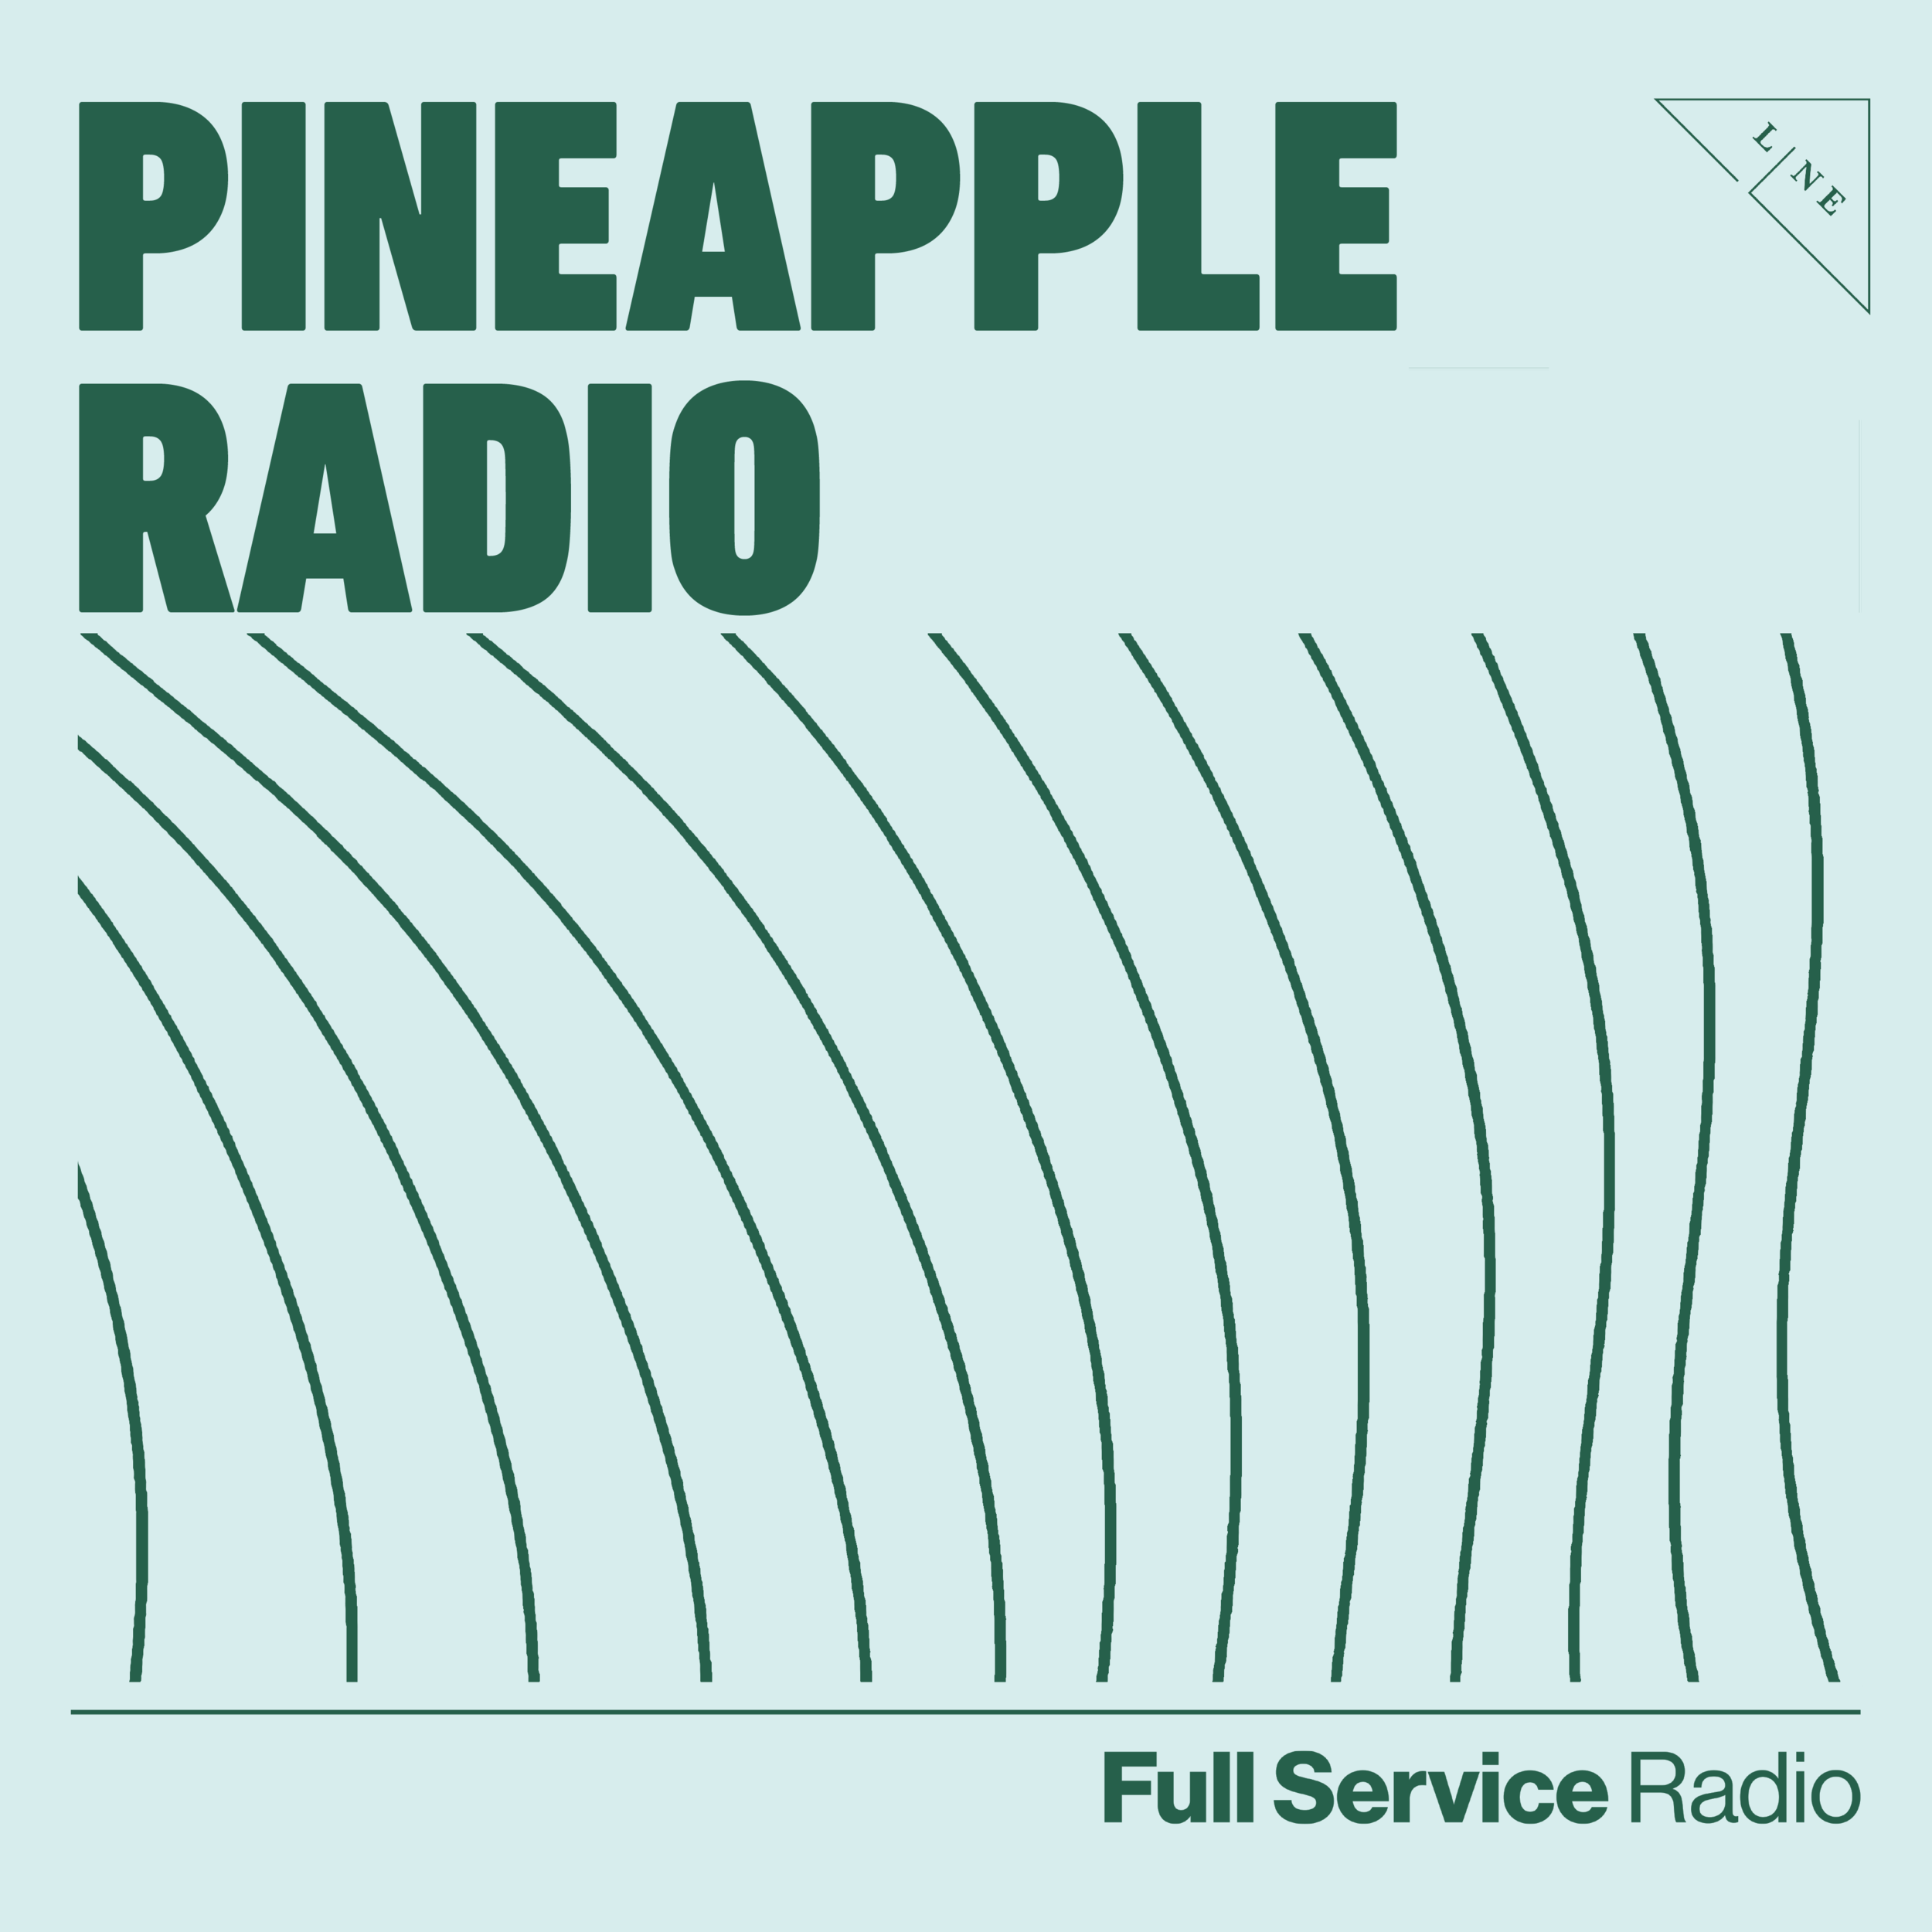 PINEAPPLE_20RADIO.png